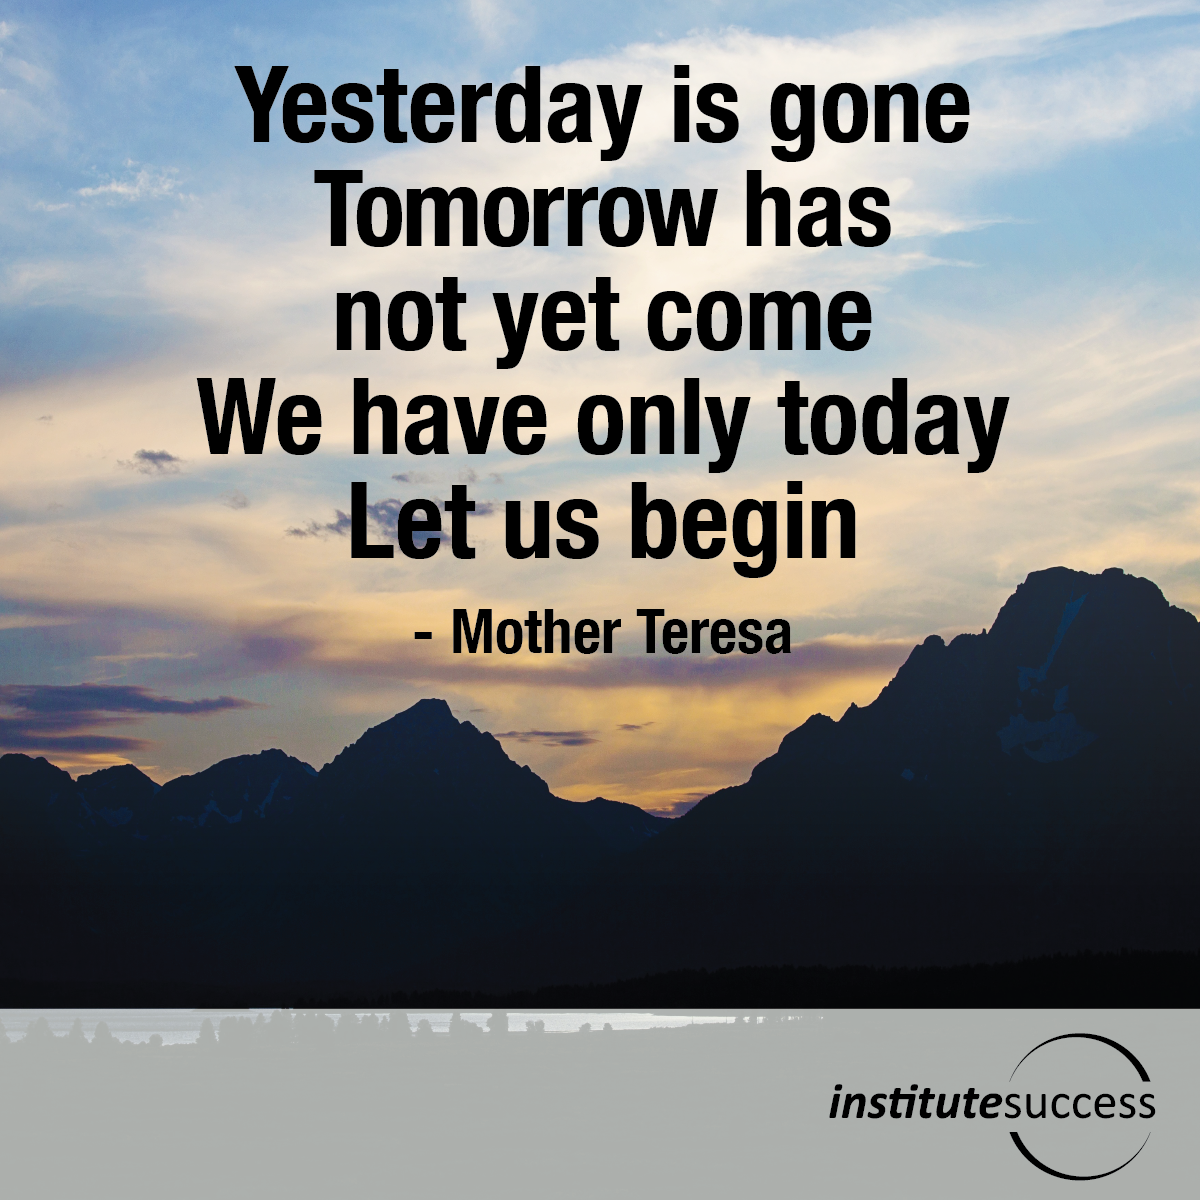 Yesterday is gone. Tomorrow has not yet come. We have only today. Let us begin – Mother Teresa